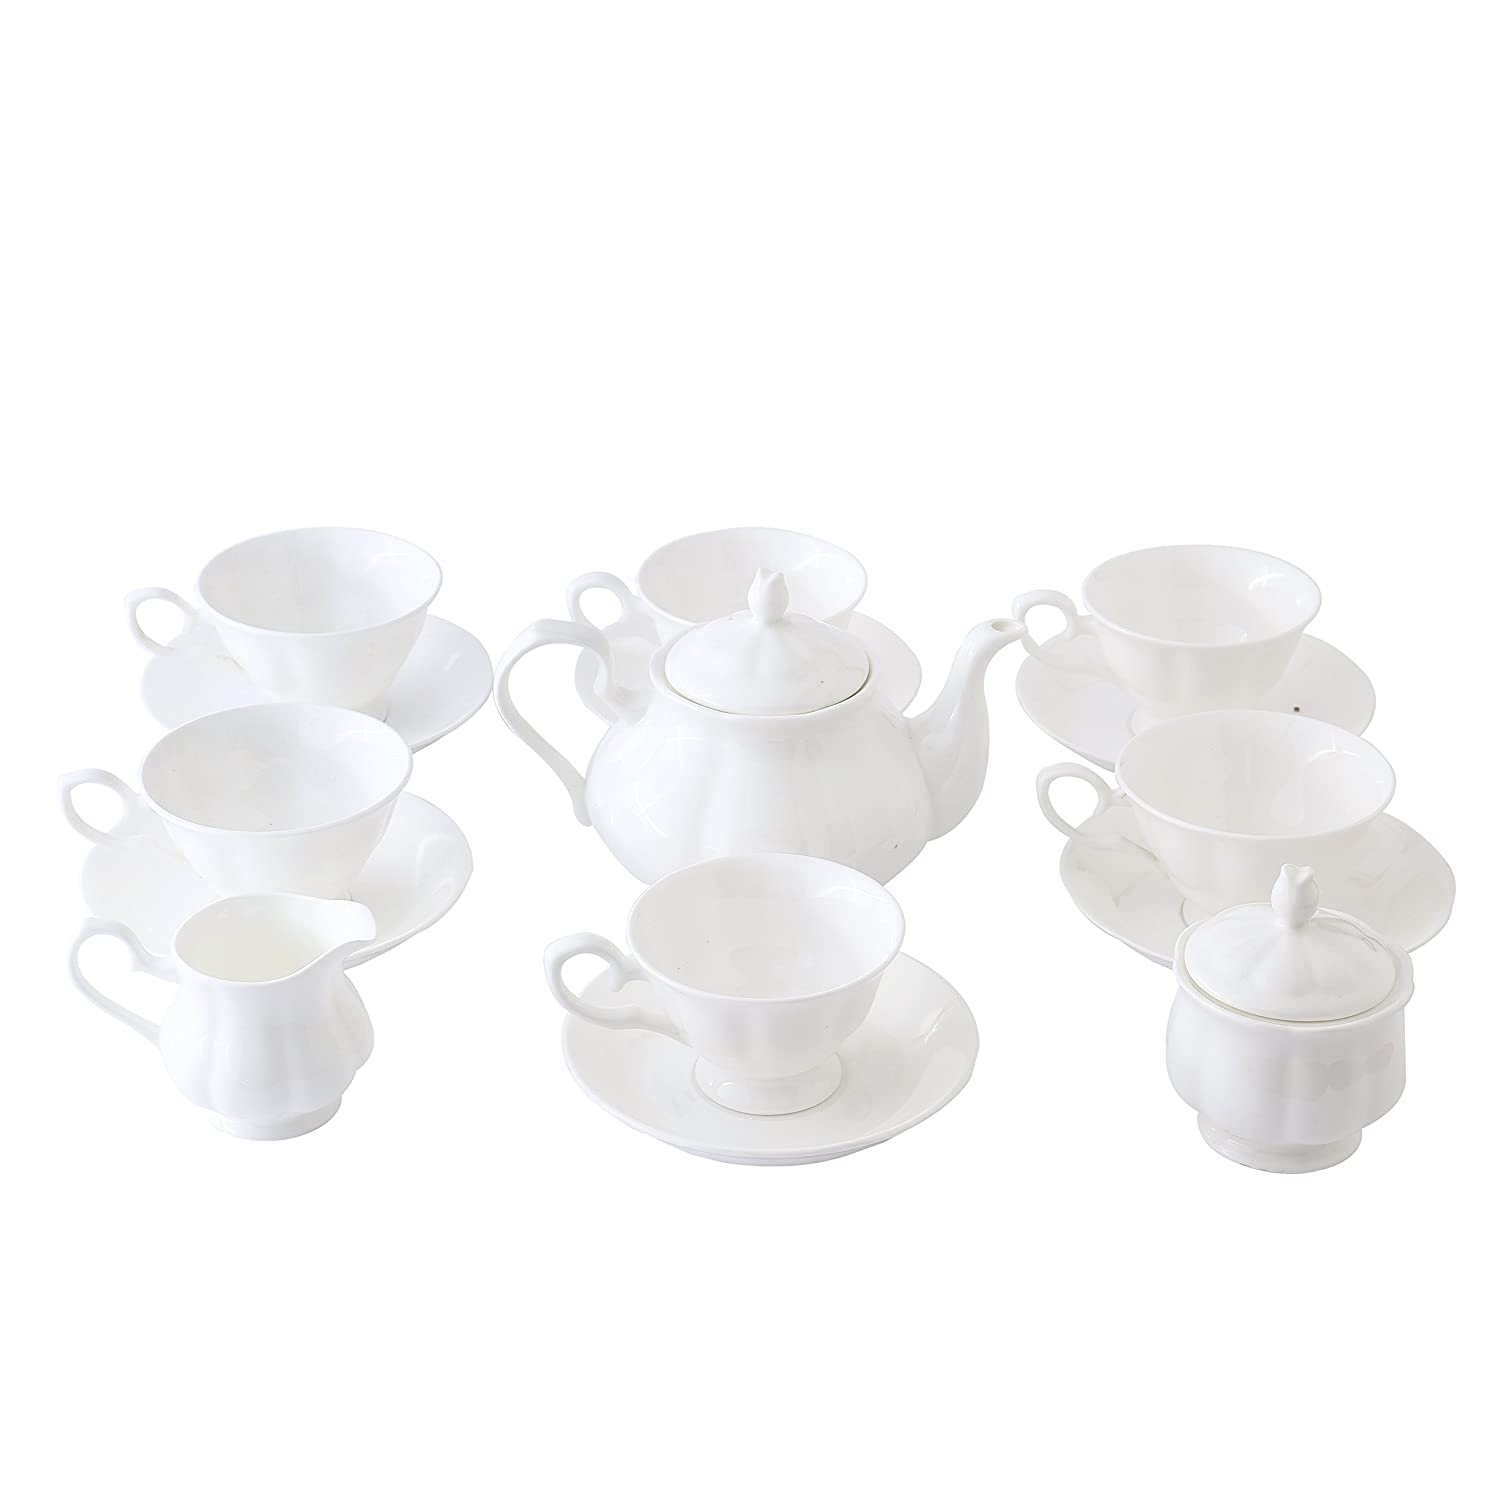 15 Piece European Classical Bone China Tea Set,Jingdezhen Pure White Coffee Tea Sets,For Household,Wedding Ufingo LEPAC10606